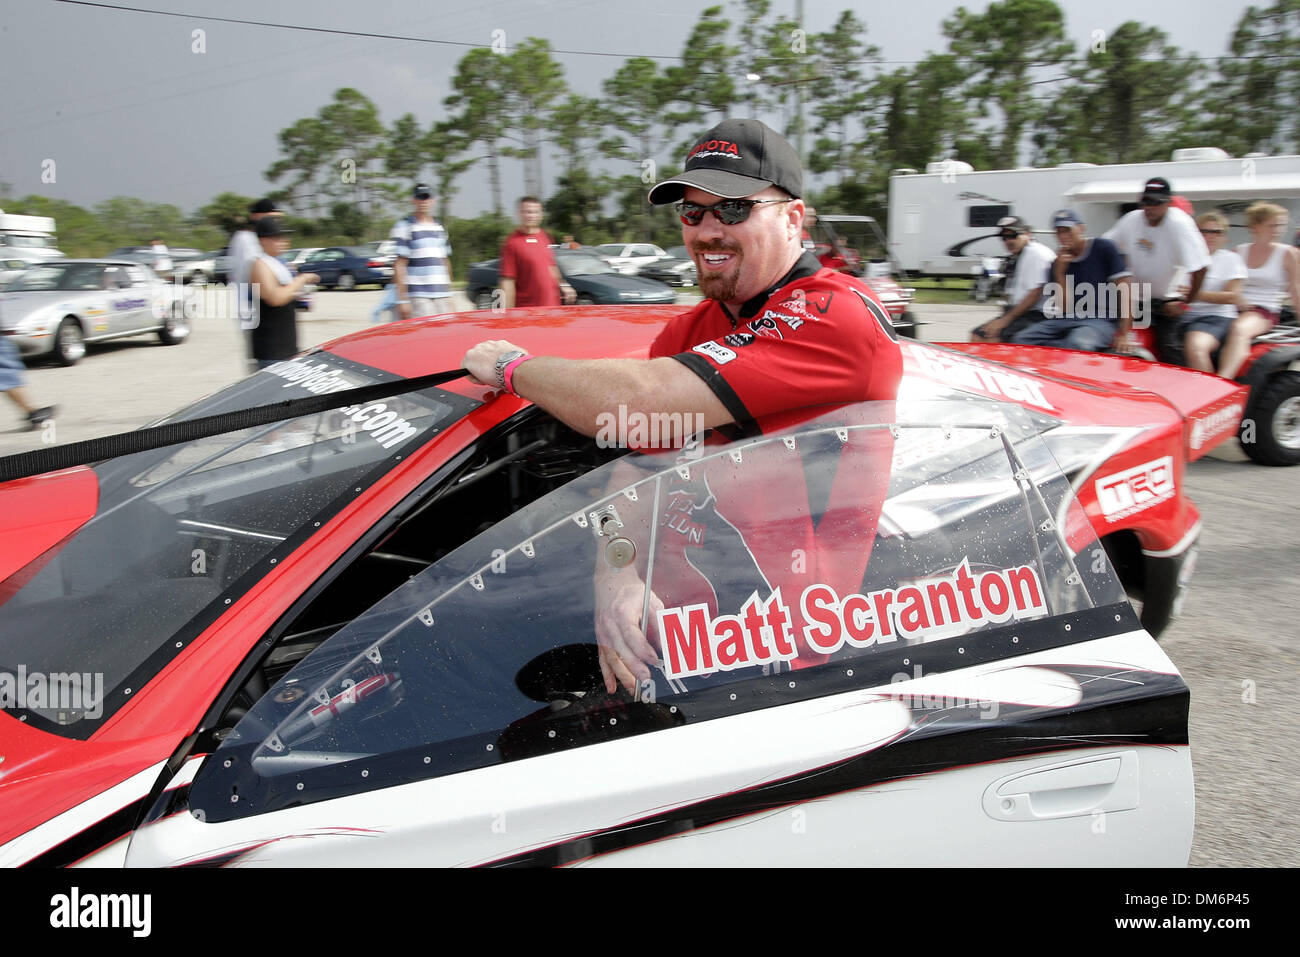 Aug 21, 2005; Palm Beach, CA, USA; MATT SCANTRON tows his 2004 Toyota Celica back to his trailor as rain storms approach, suspending races during the Palm Beach Sport Car Nationals at Moroso Motorsports Park on Aug. 21, 2005.  Scranton is the NHRA 2004 RWD points leading champion. Mandatory Credit: Photo by Richard Graulich/Palm Beach Post/ZUMA Press. (©) Copyright 2005 by Palm Bea - Stock Image